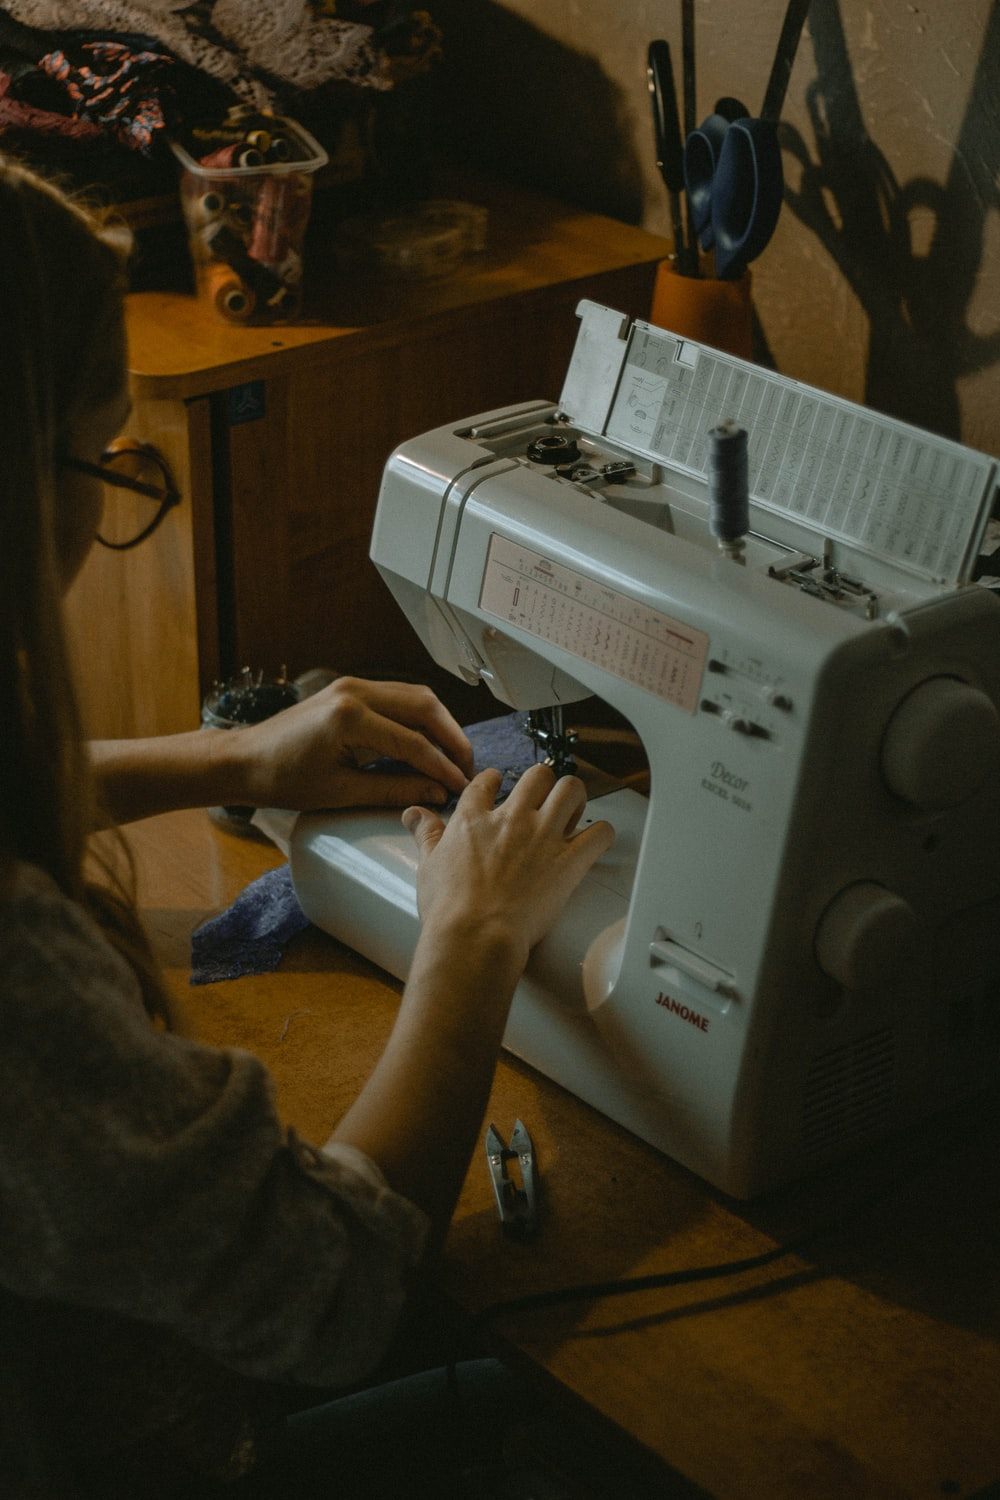 person using white sewing machine